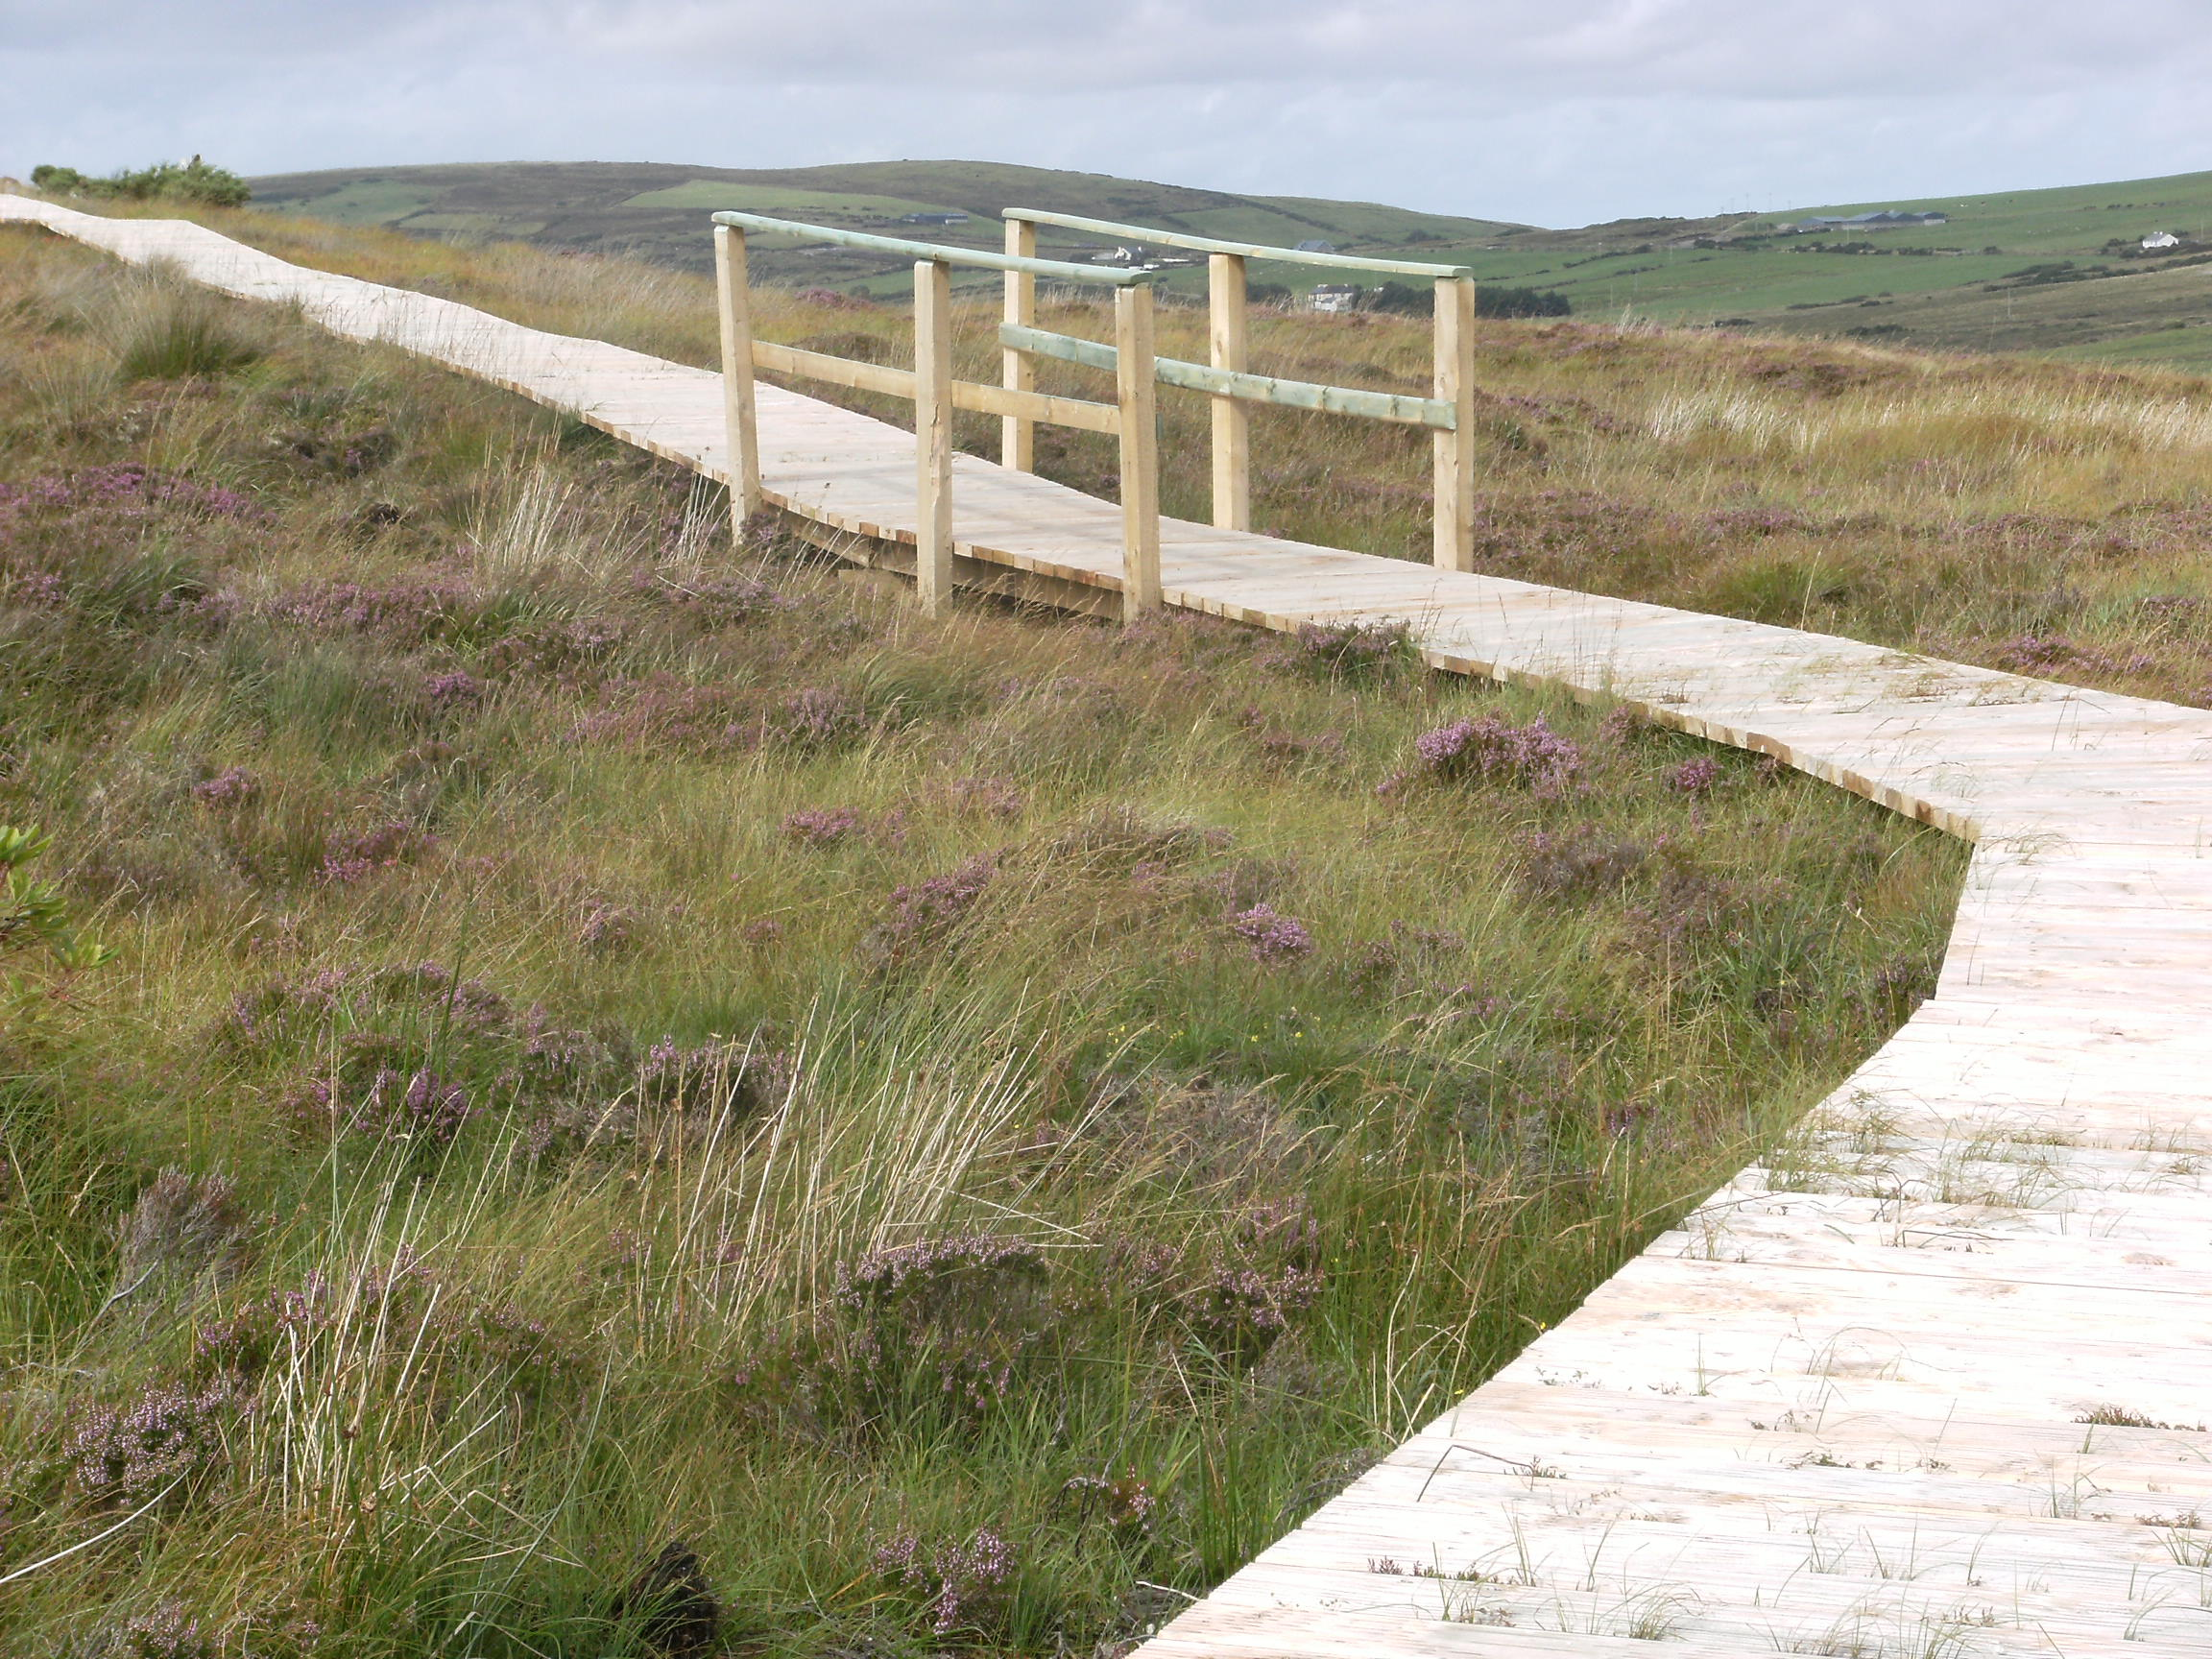 Boardwalk through Bog, Ballycroy NP.